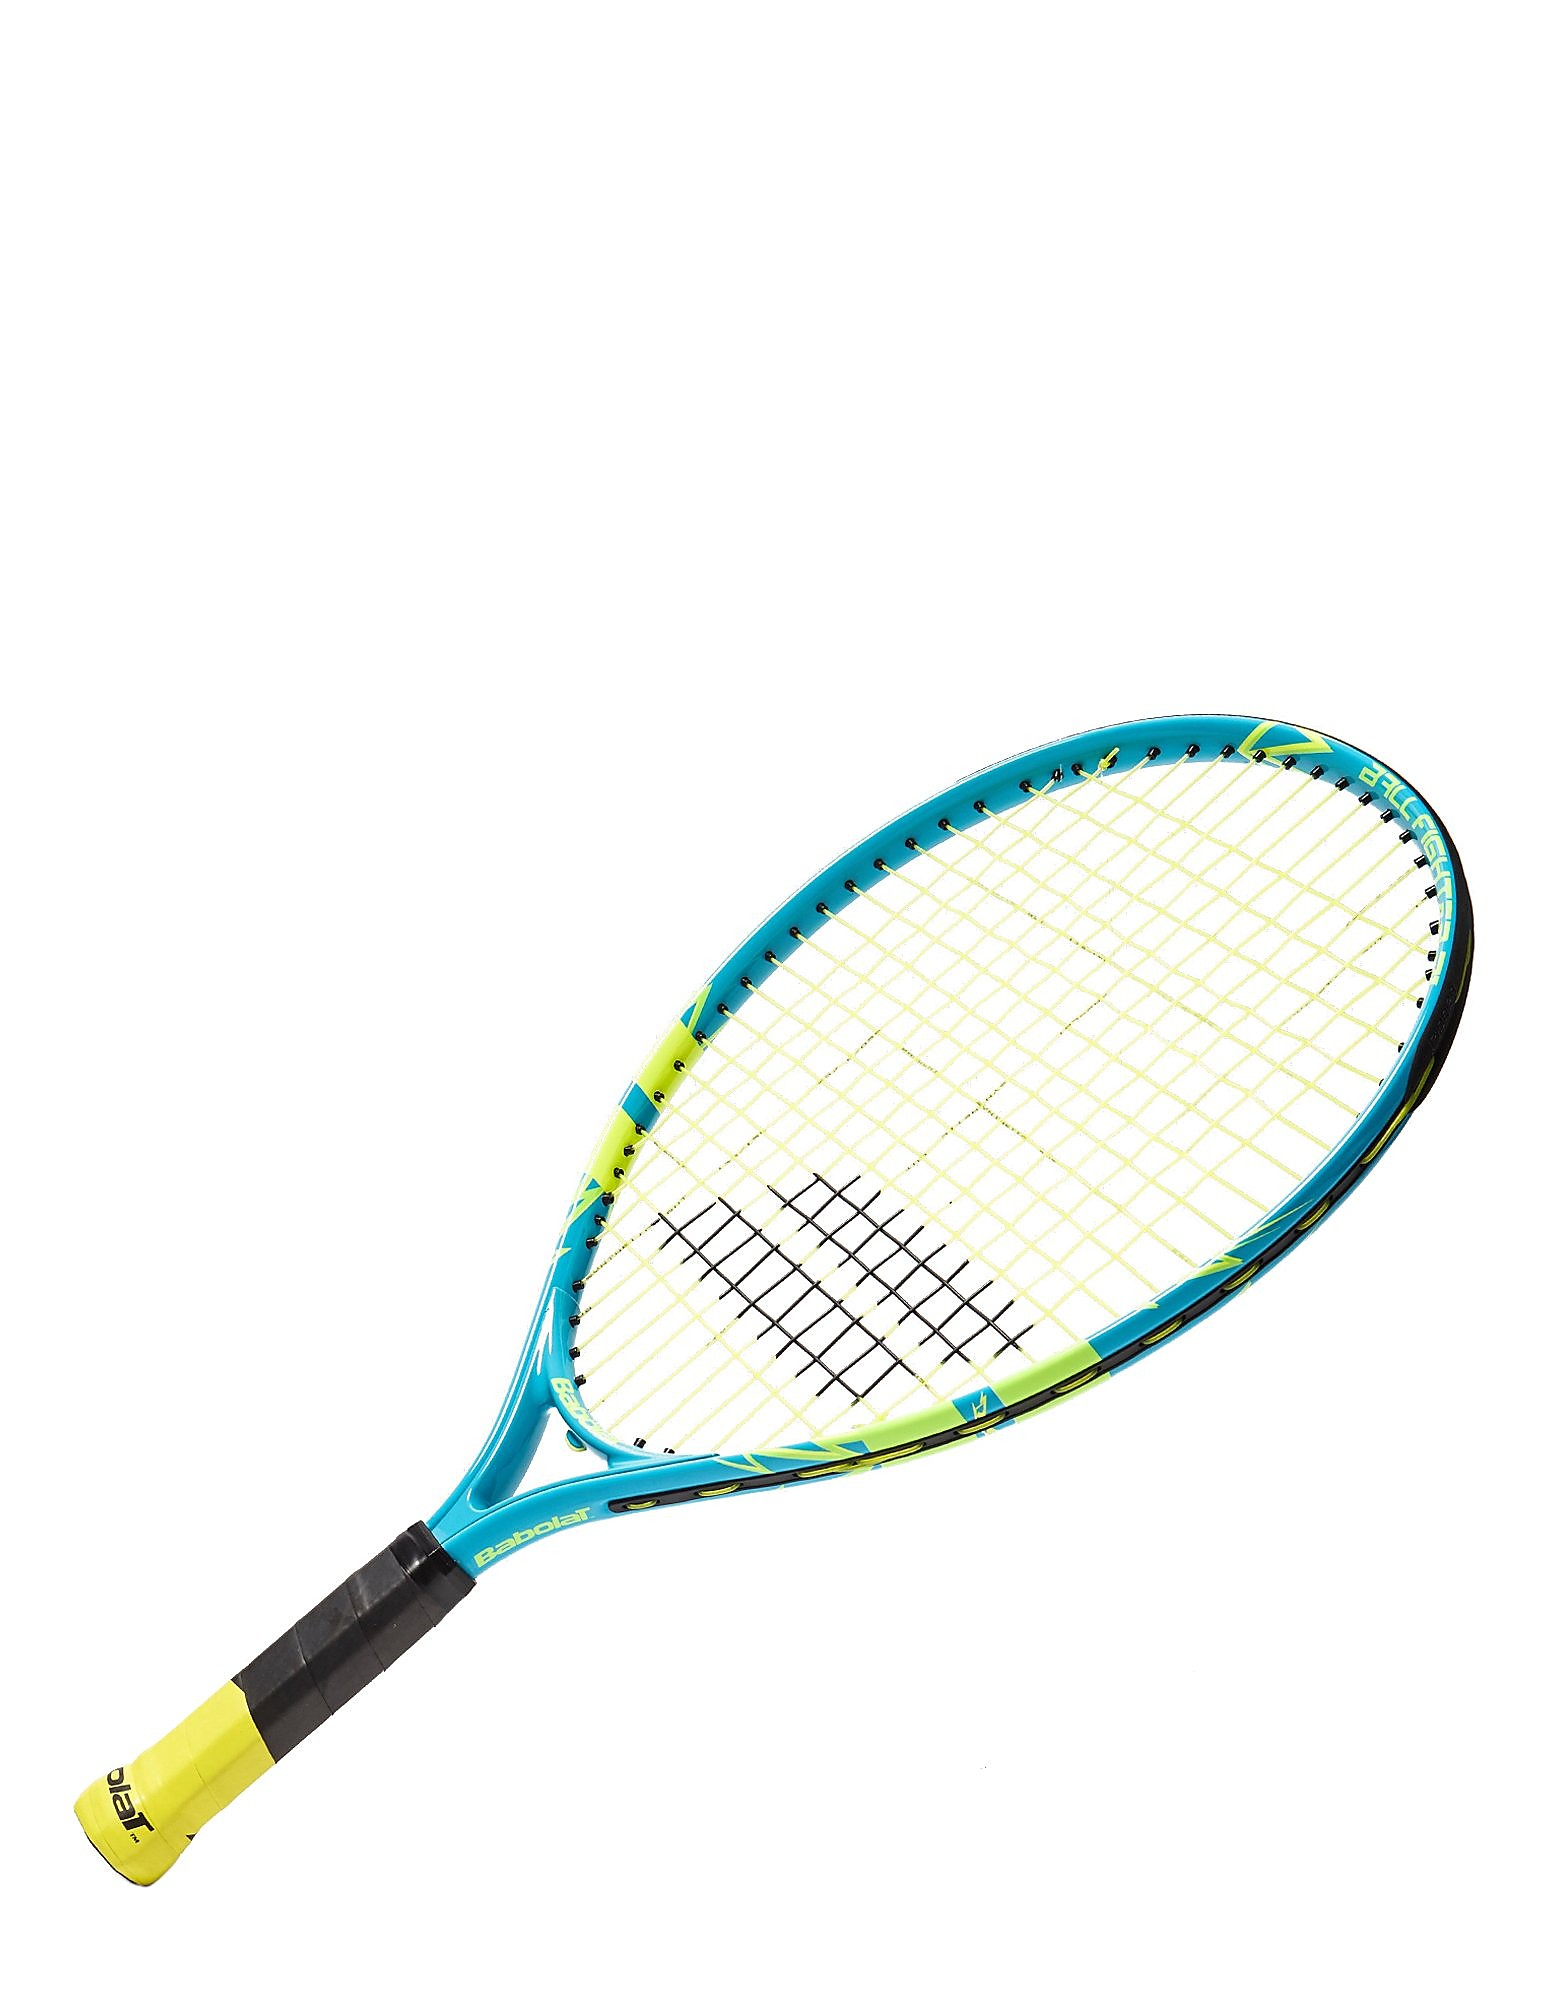 Babolat Ballfighter 21 Tennis Racket Junior